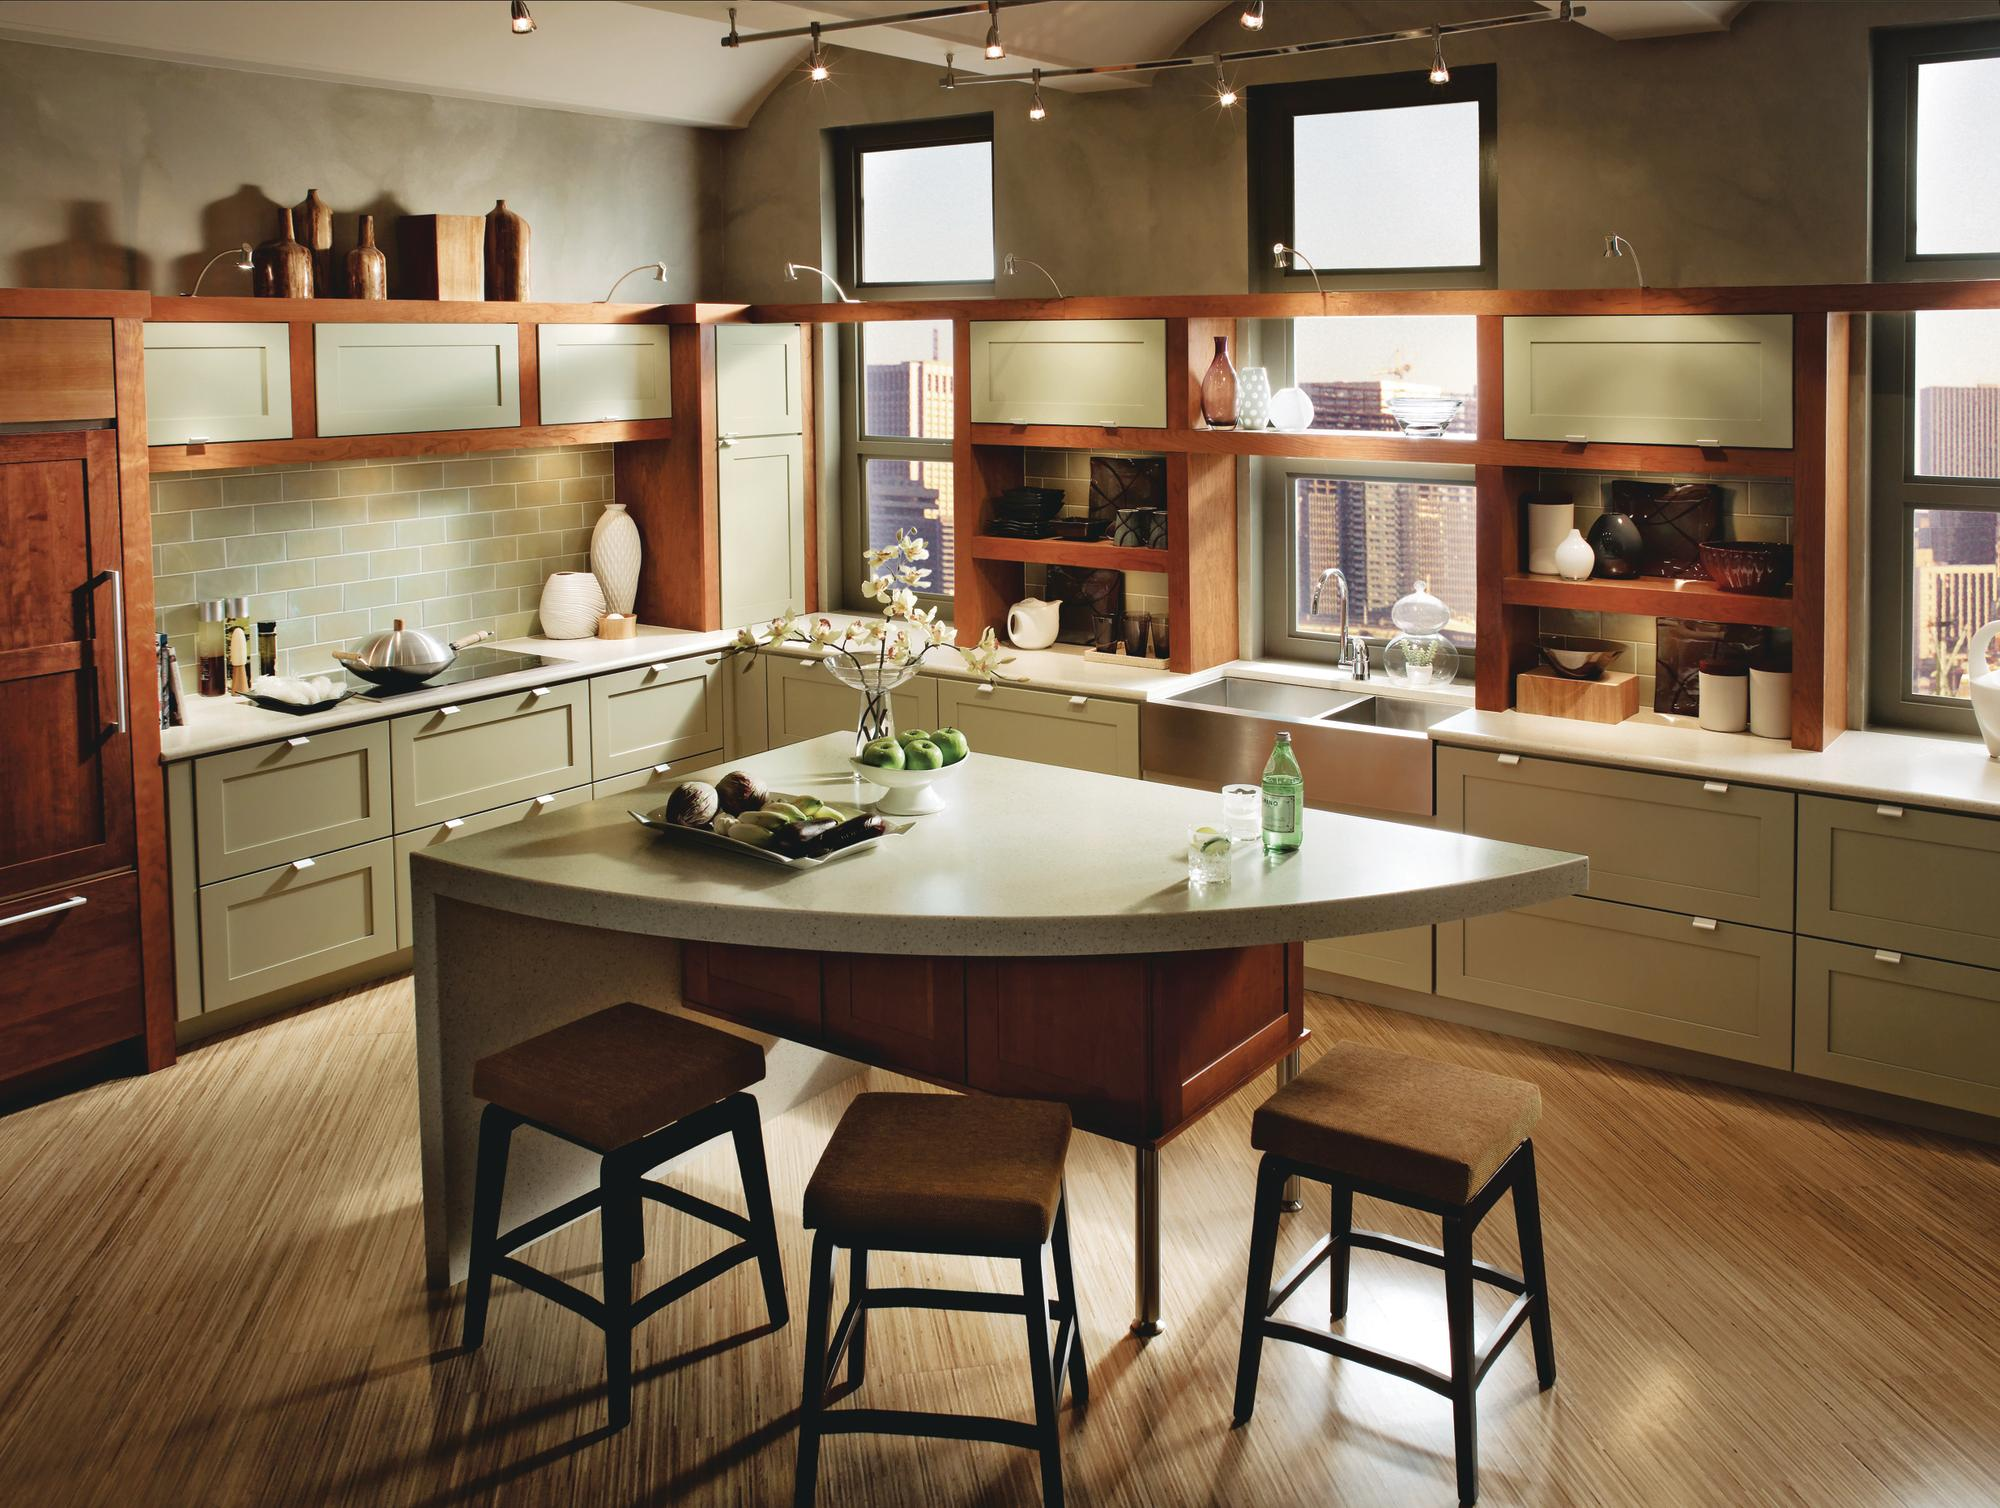 10-best-images-about-kraftmaid-cabinetry-on-pinterest-cherries.jpg